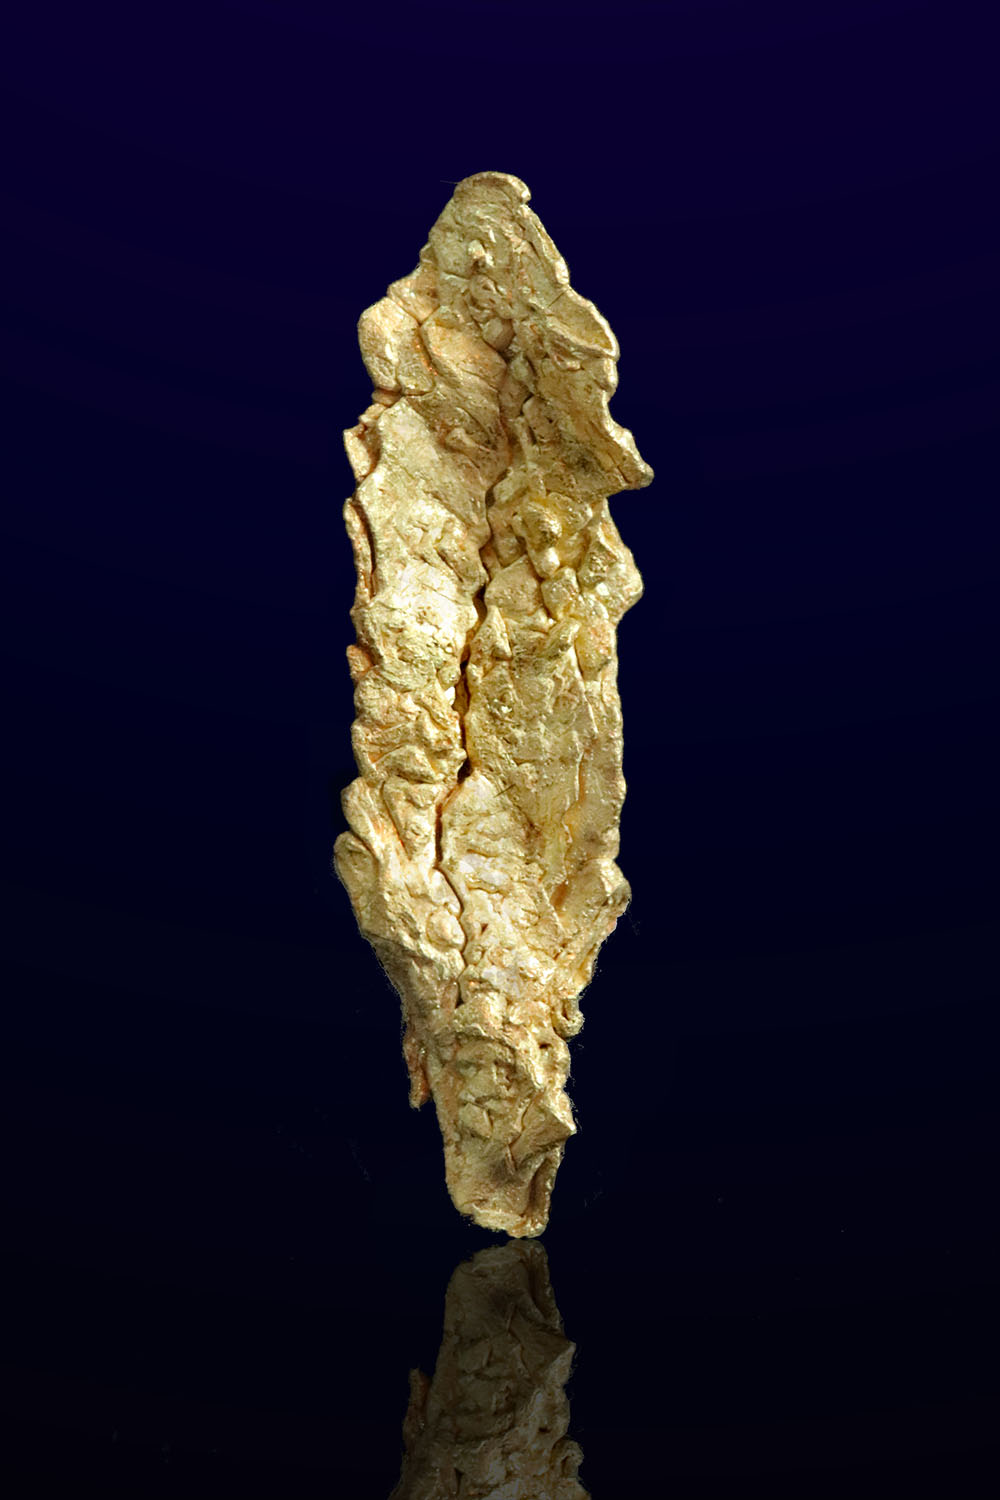 Long Feather Shaped Gold Crystal from Mt. kare, Papua New Guinea